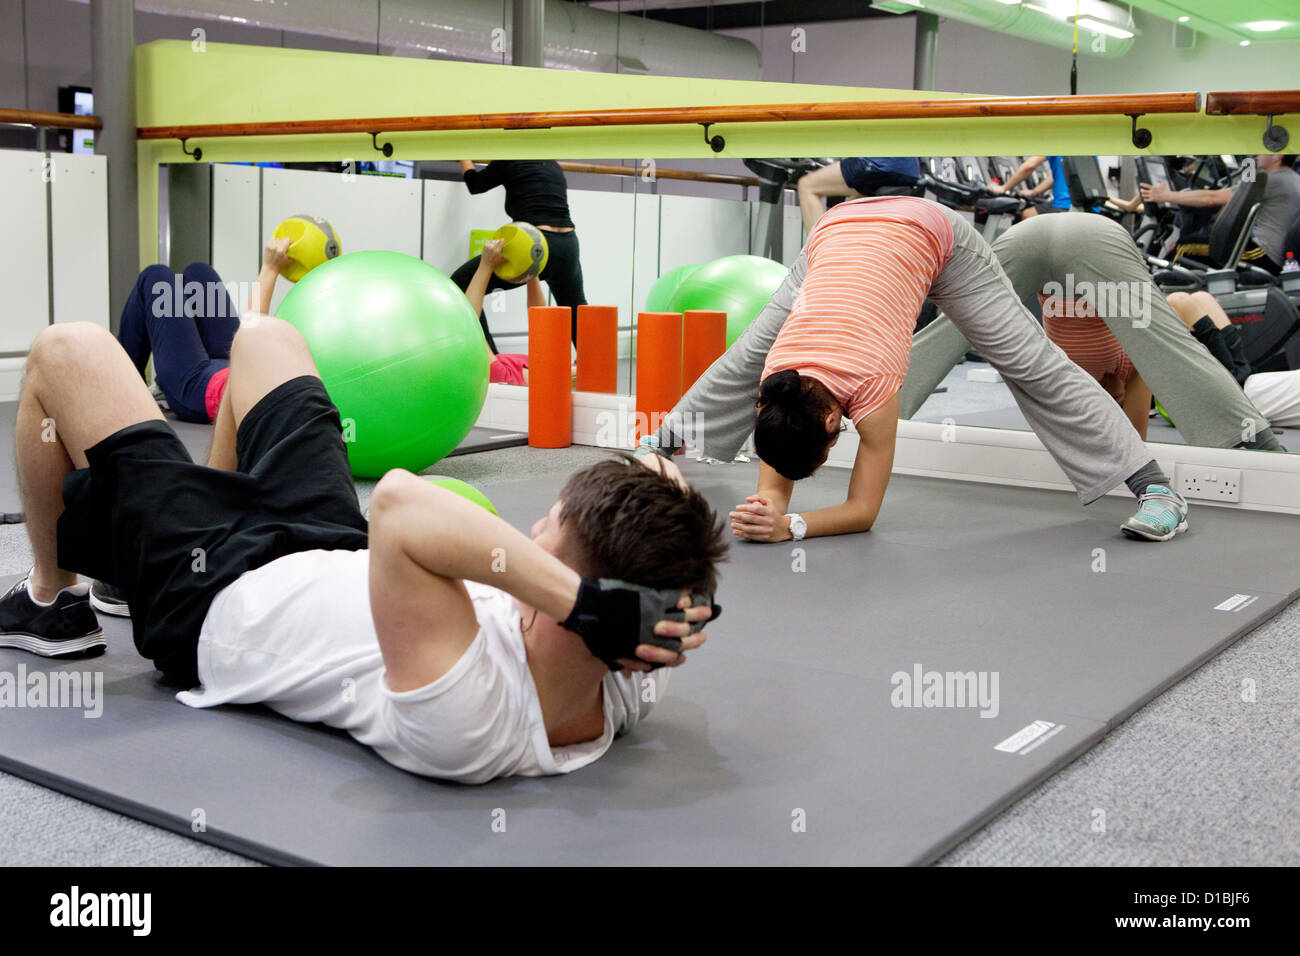 Physical exercising in a gym - Stock Image